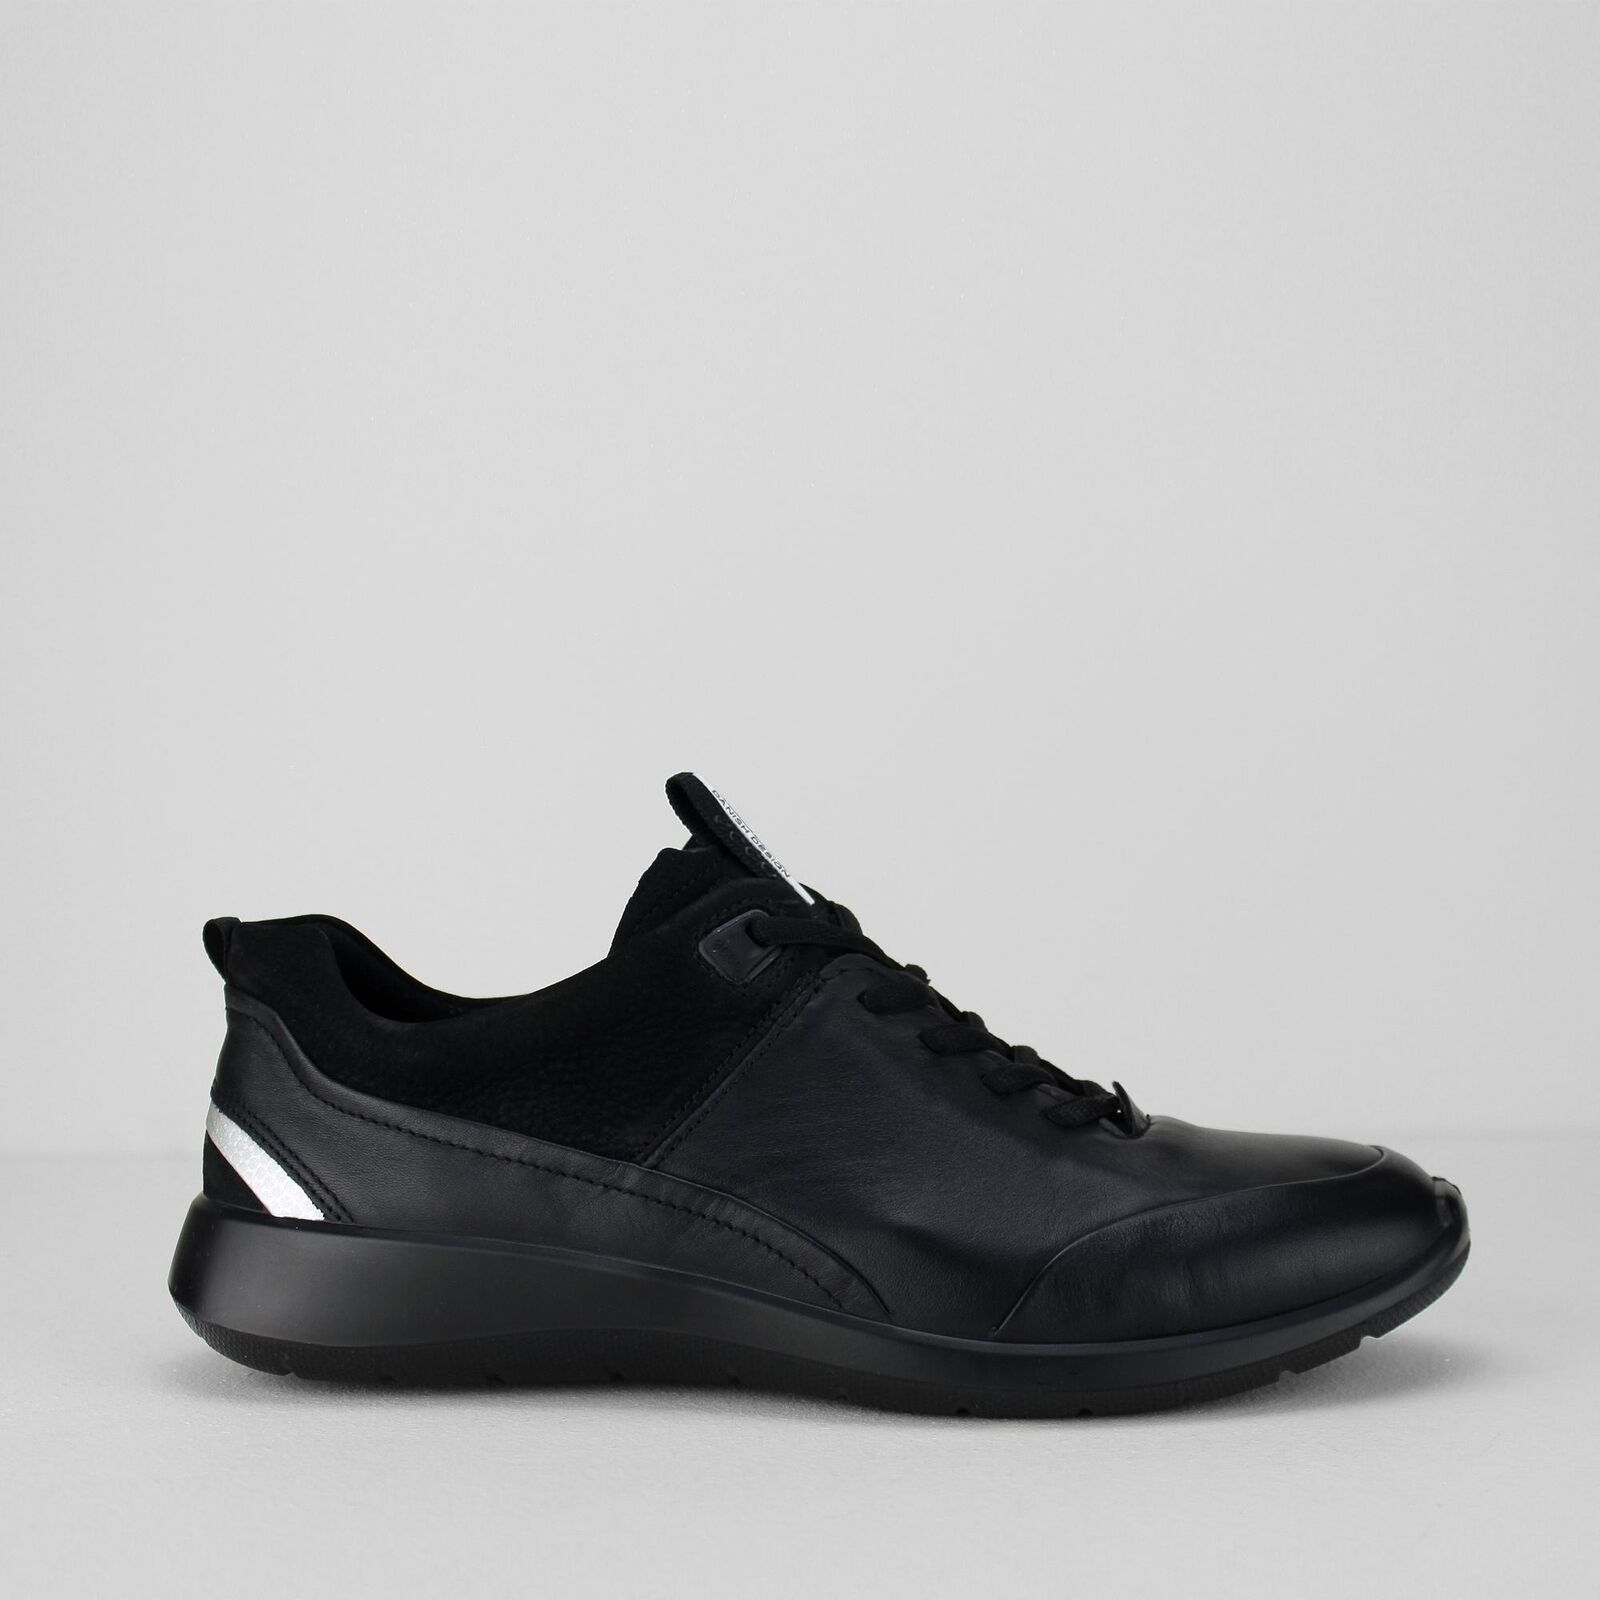 ECCO SOFT 5 Ladies donna Nubuck Leather Lace Up Casual  Comfy Trainers nero  liquidazione fino al 70%